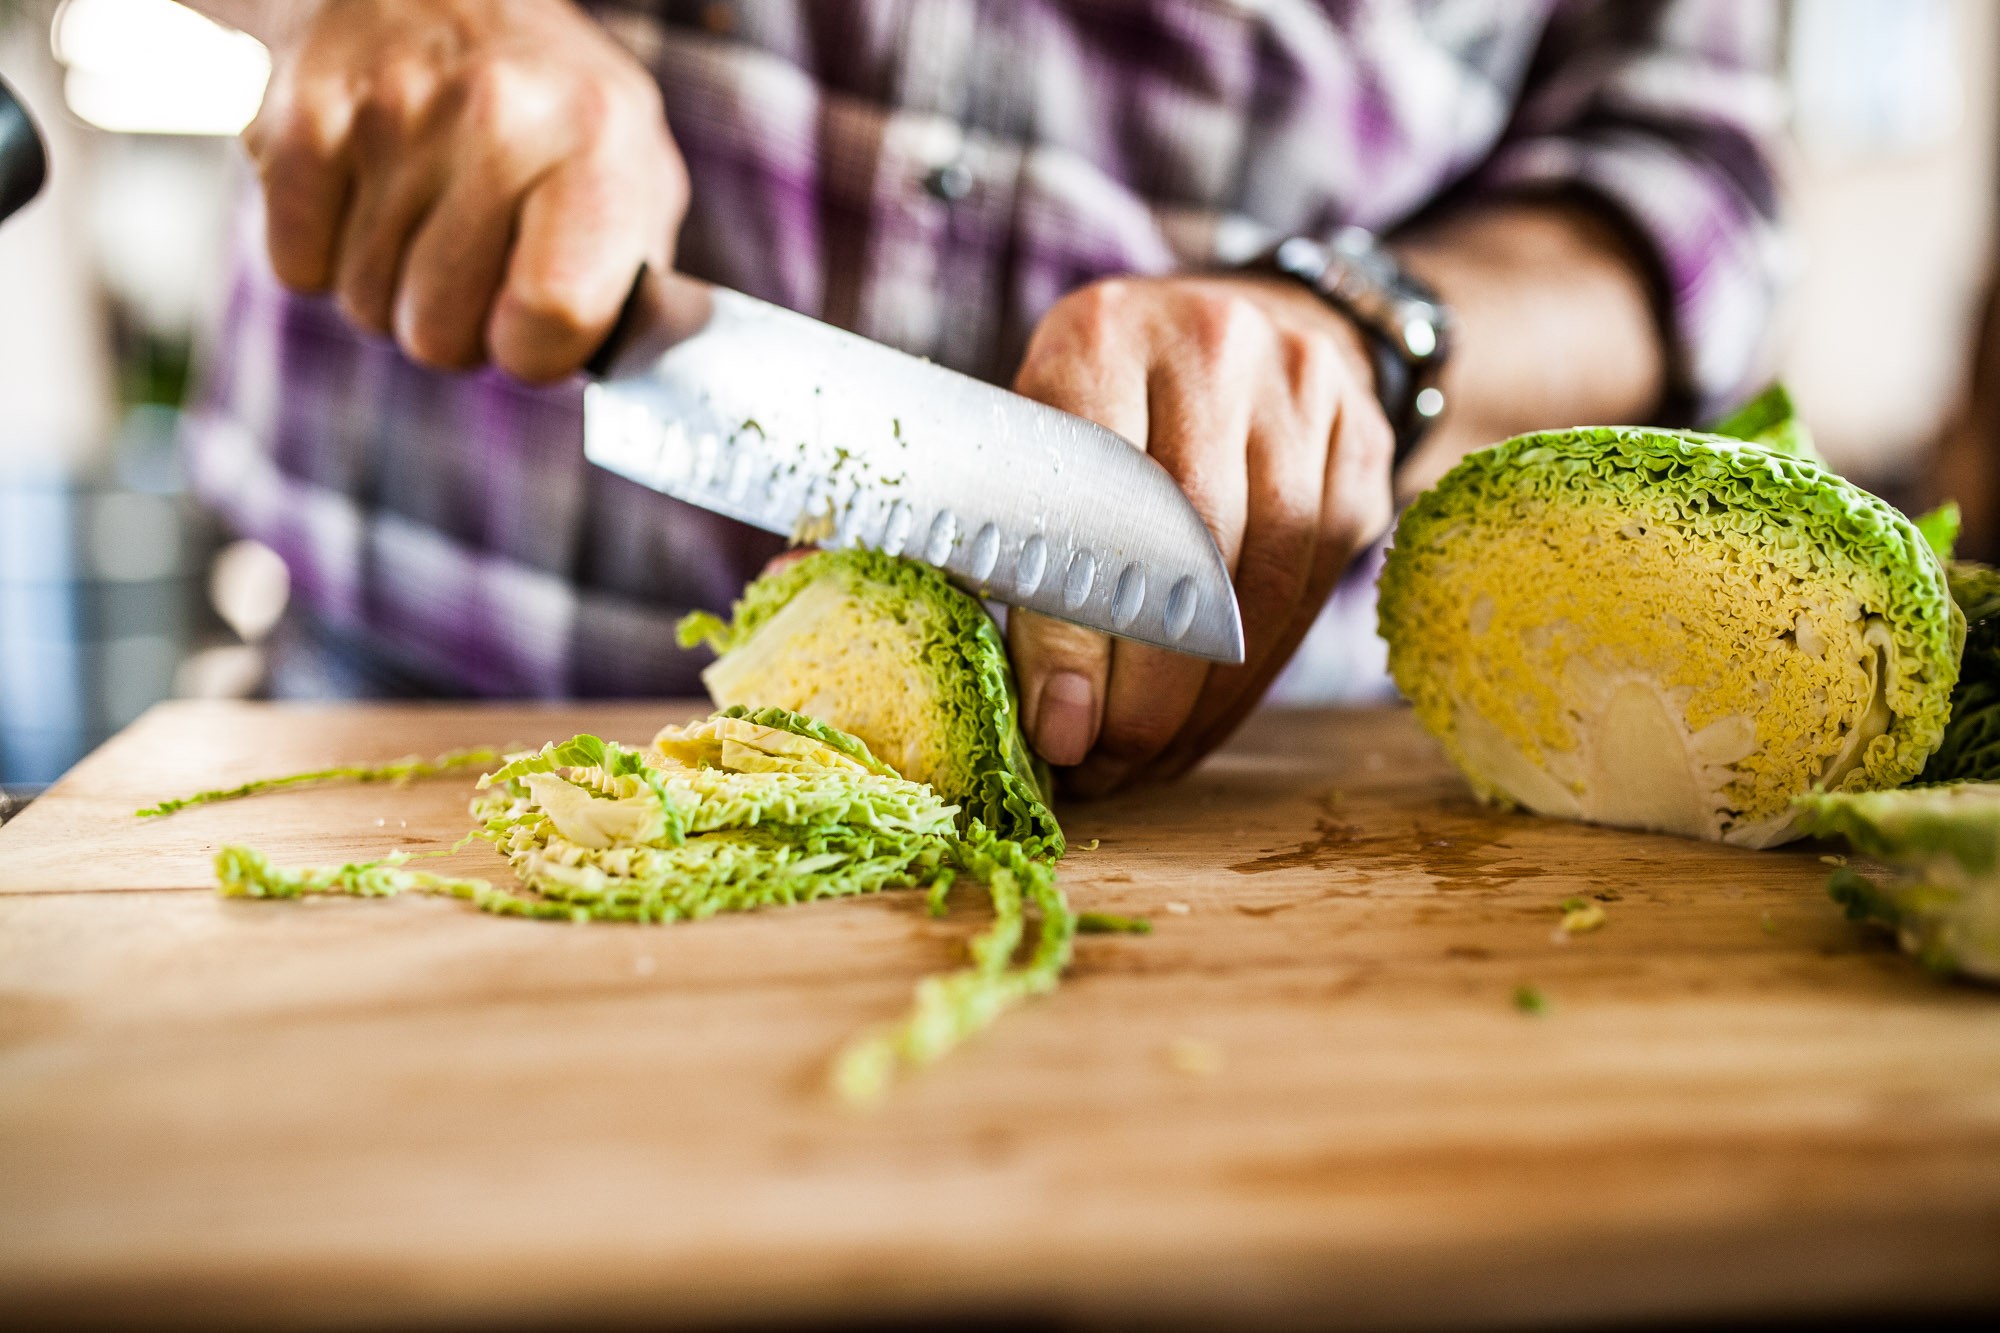 What to do if oversalted sauerkraut Practical advice 31